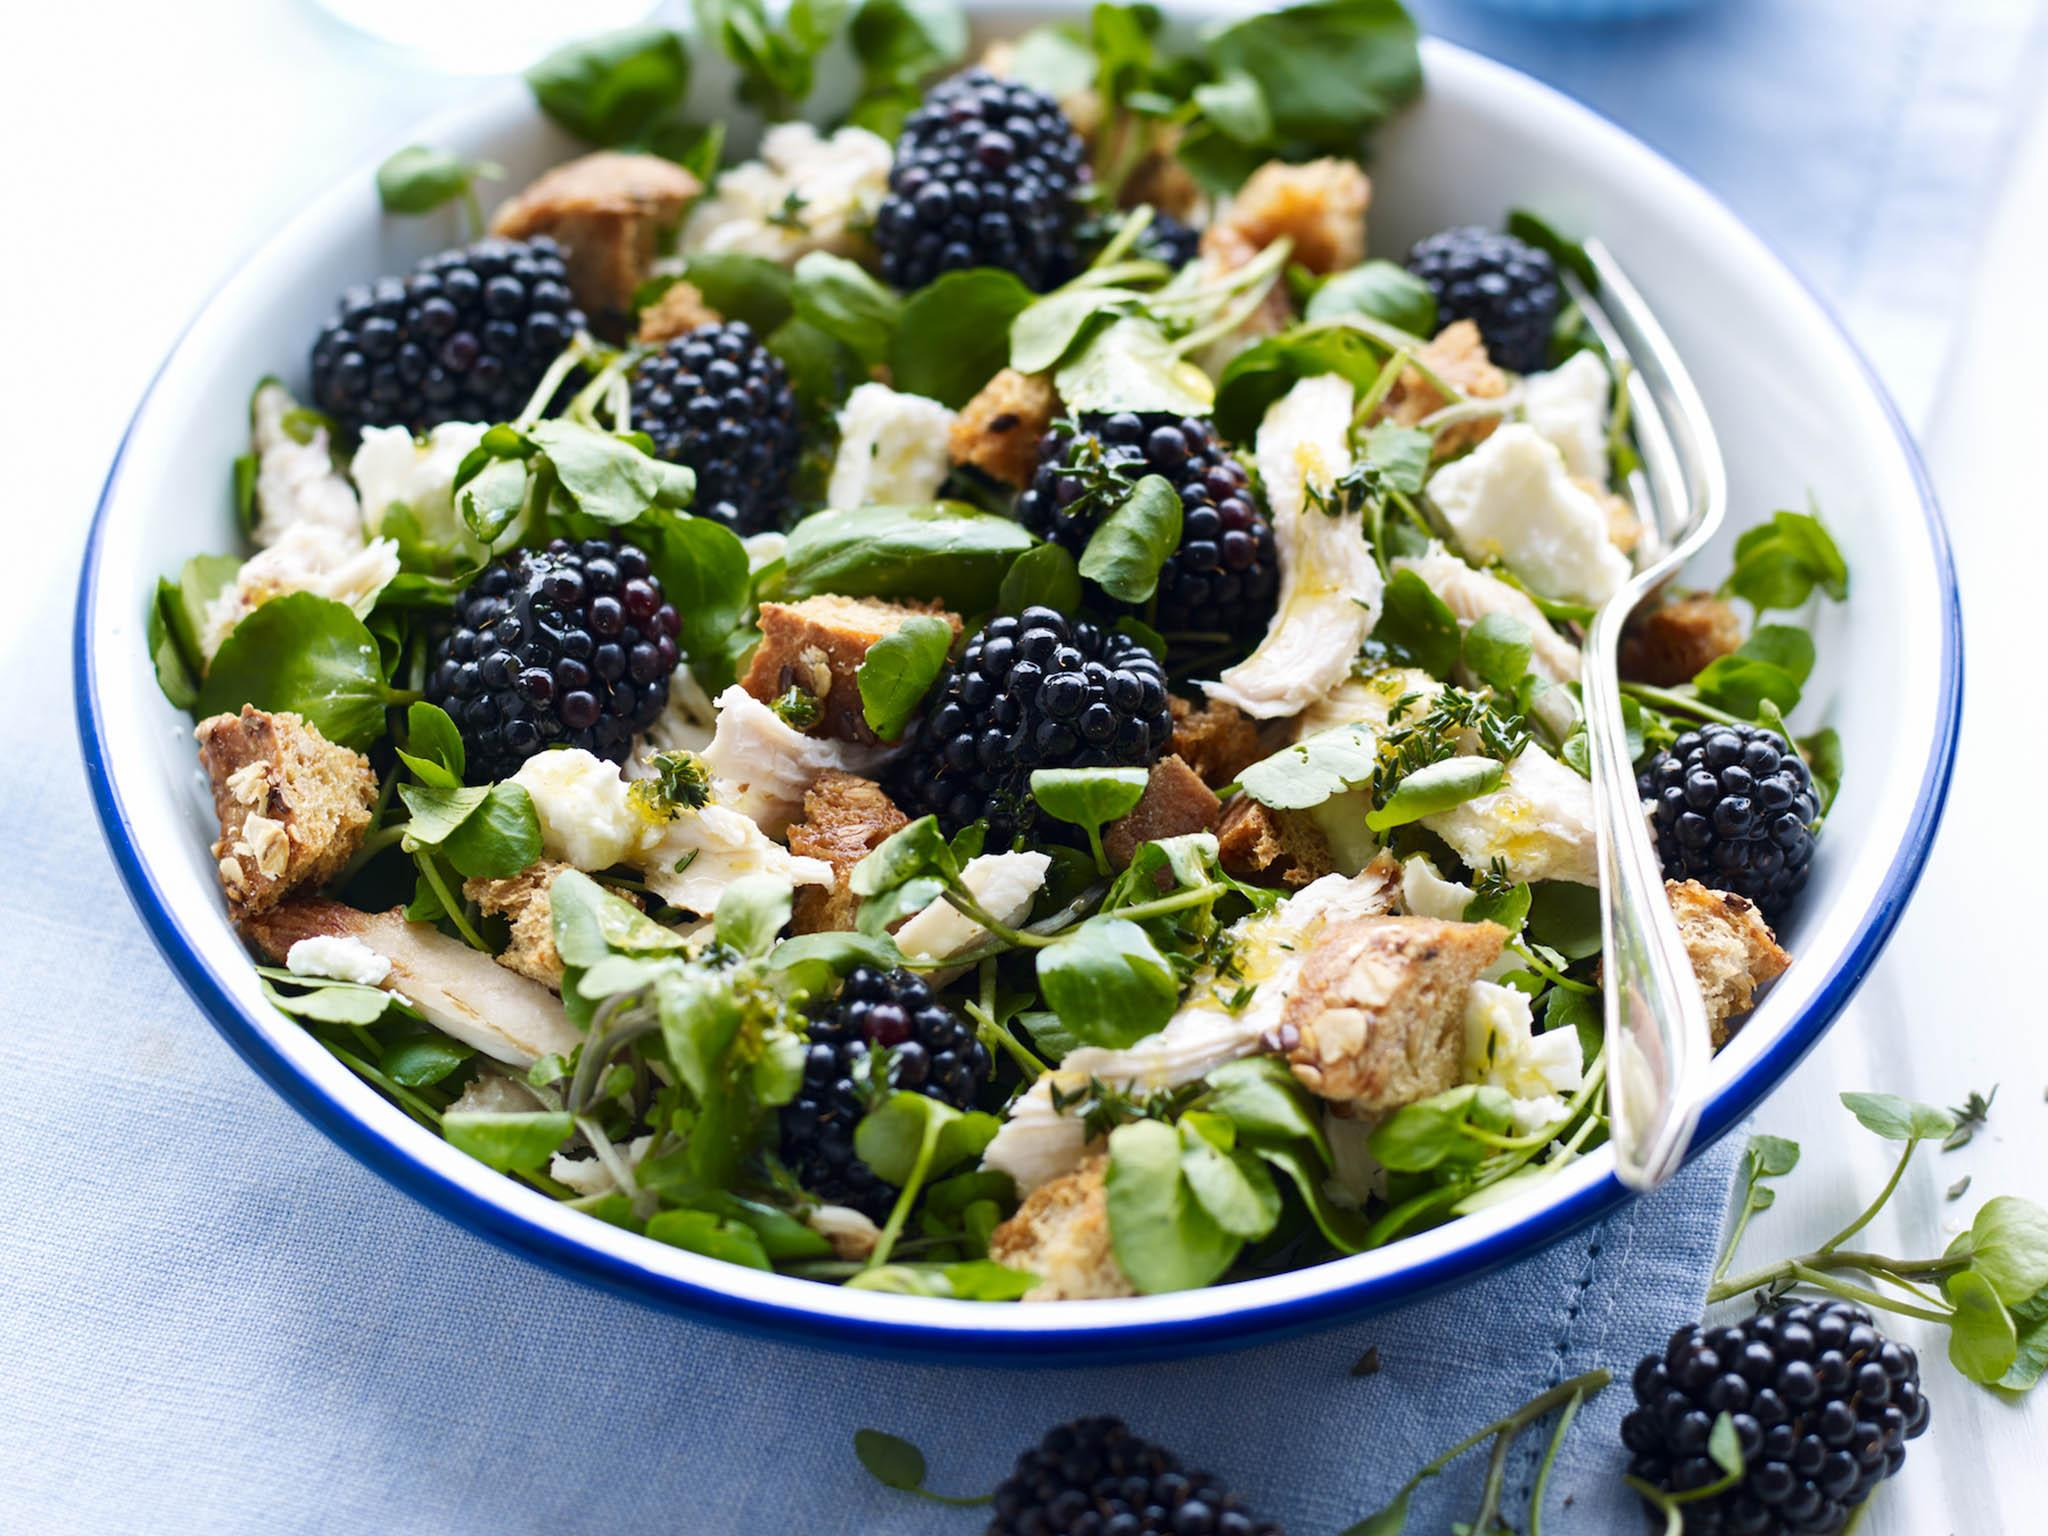 How to make chicken and blackberry salad | The Independent